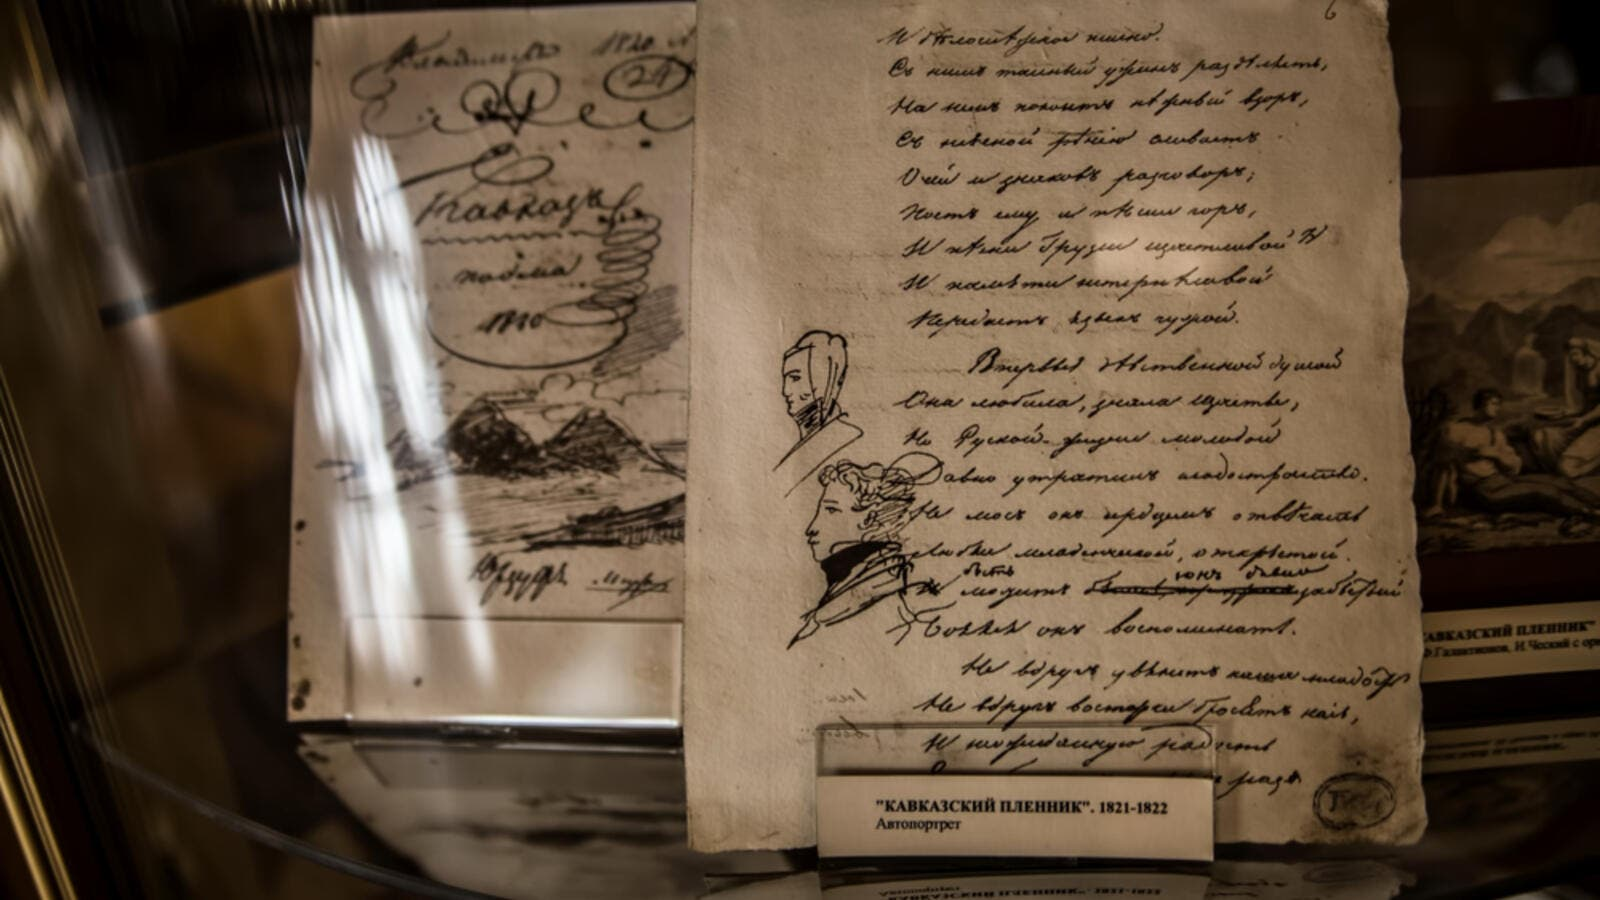 Manuscript and Drawings of Alexander Pushkin (Shutterstock)